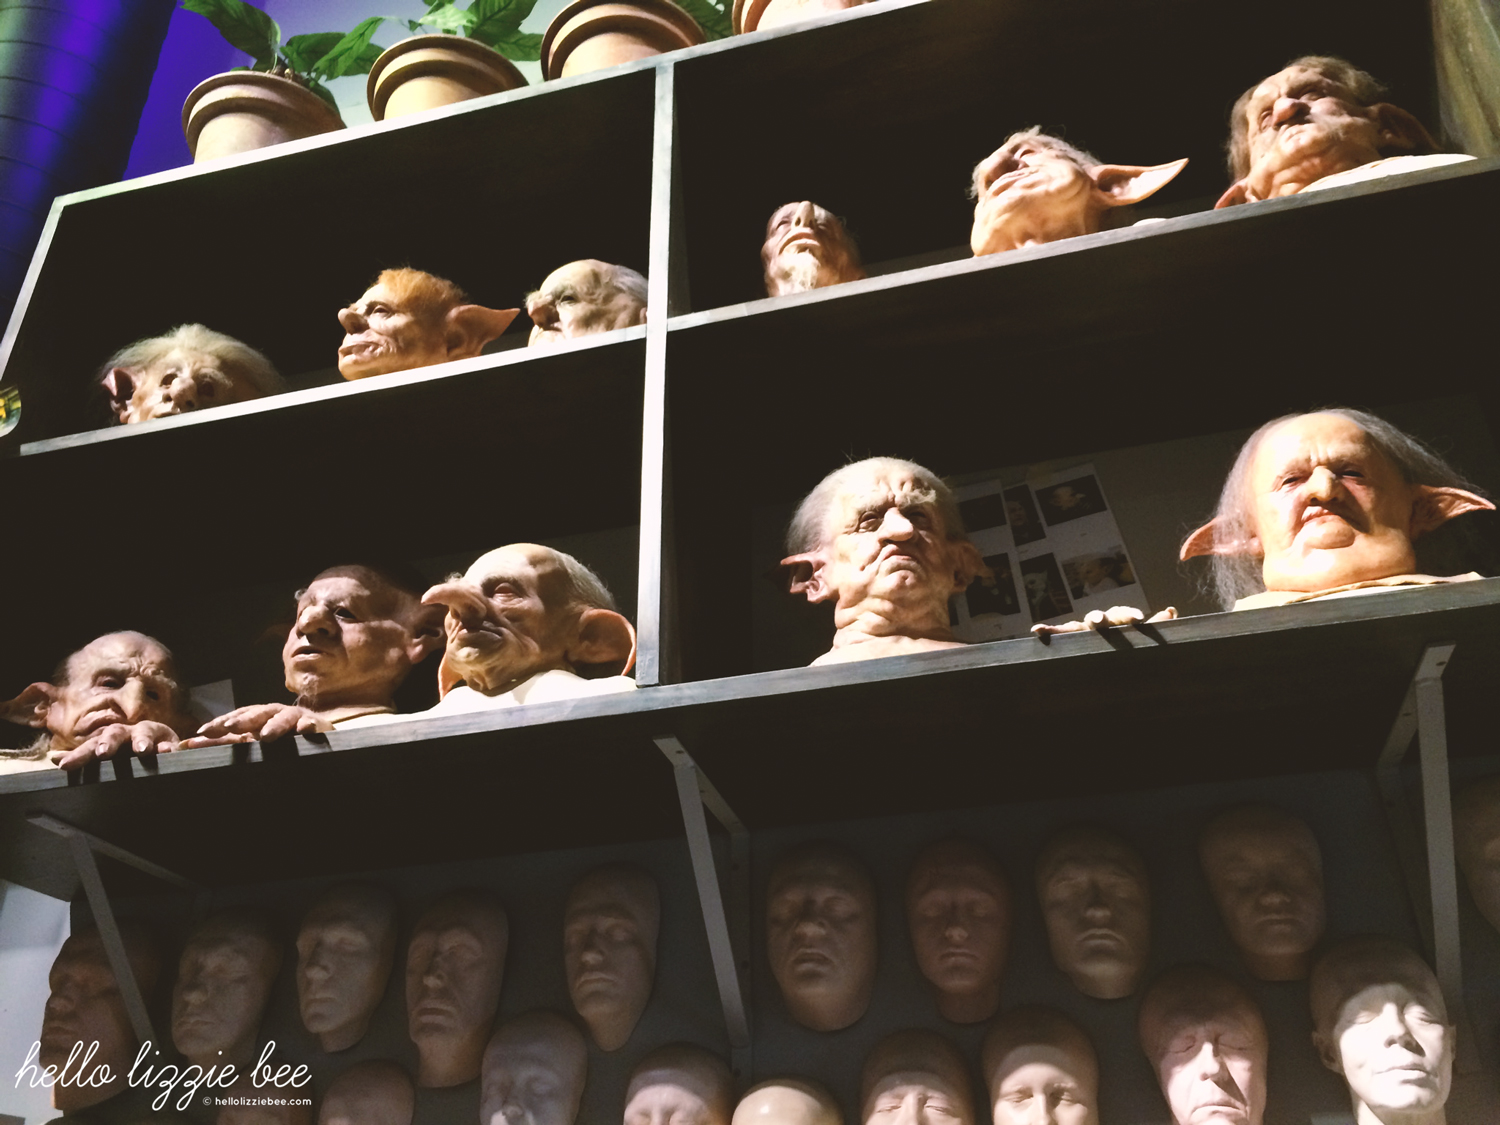 goblin head molds